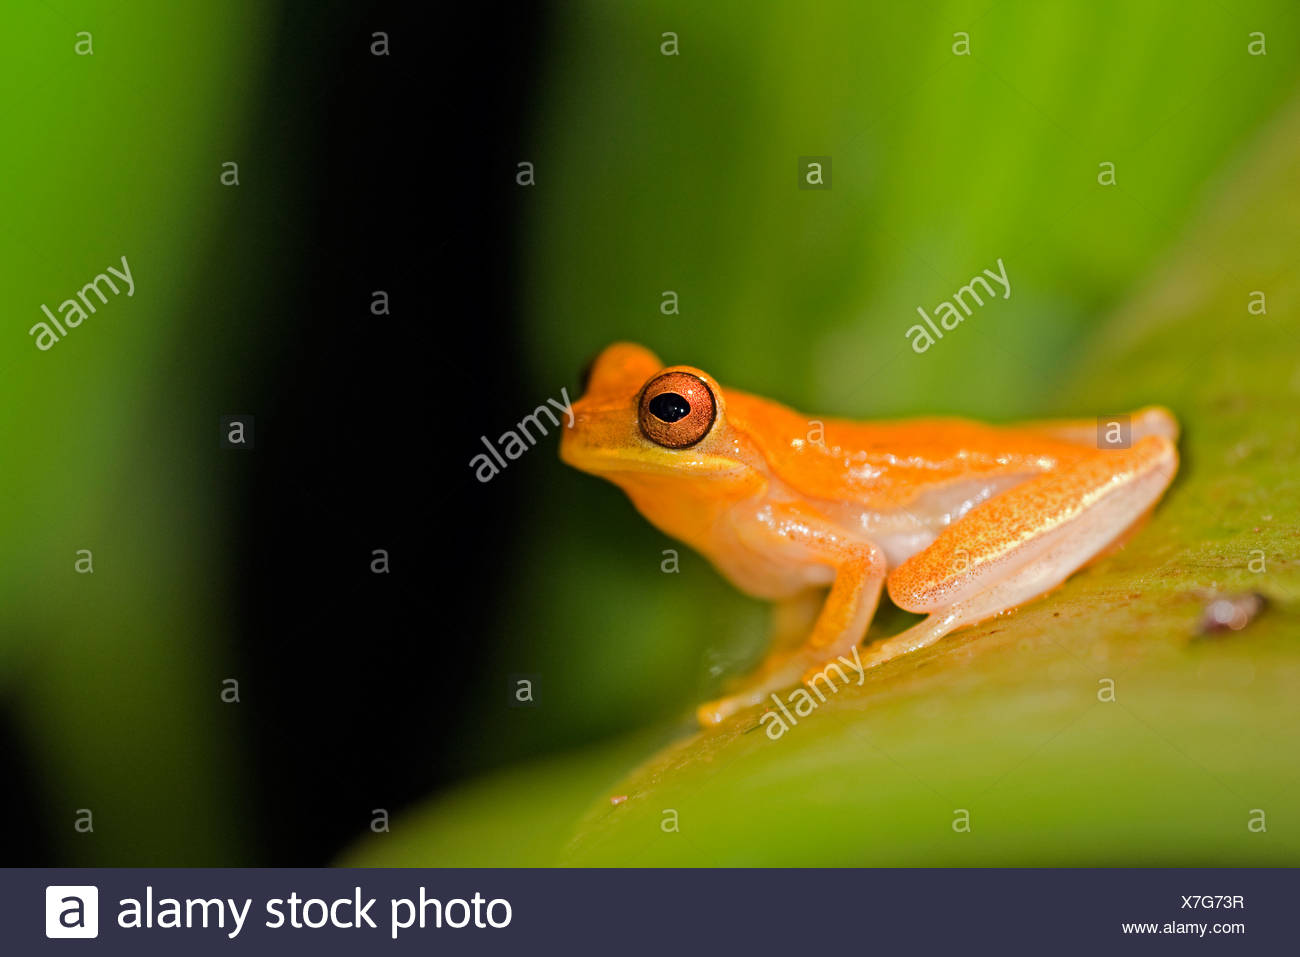 golden toad on a leaf costa rica stock photo 280025307 alamy